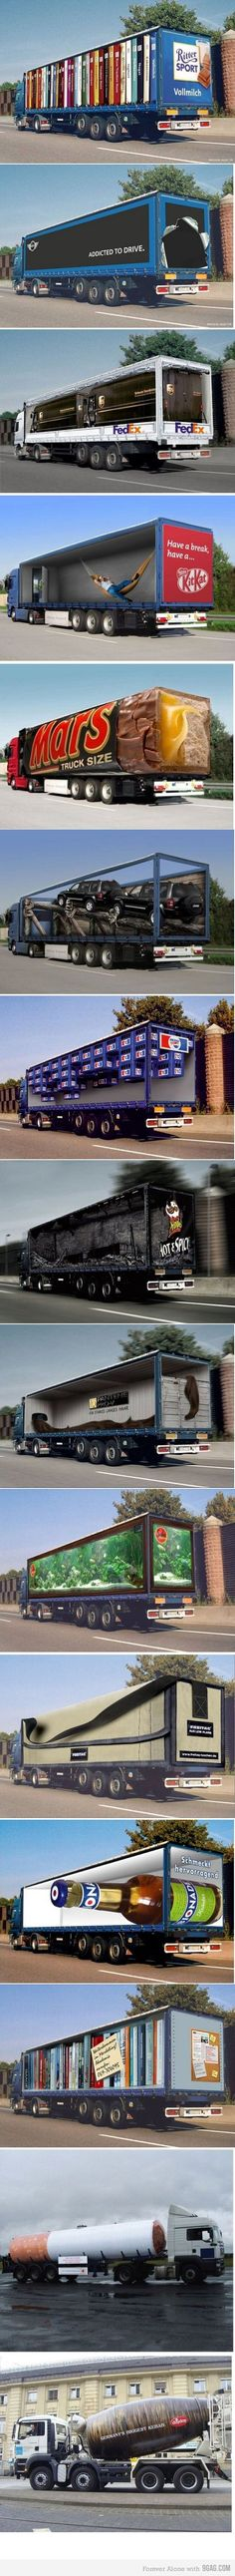 These trucks have been evolved into an advertising platform in a way that is not just a typical poster. They have used the shapes of the trucks to relate to the products that they are advertising and it has been done with a lot of success. My personal favourite is the one shaped like a cigarette as the truck is the perfect shape to accommodate this.